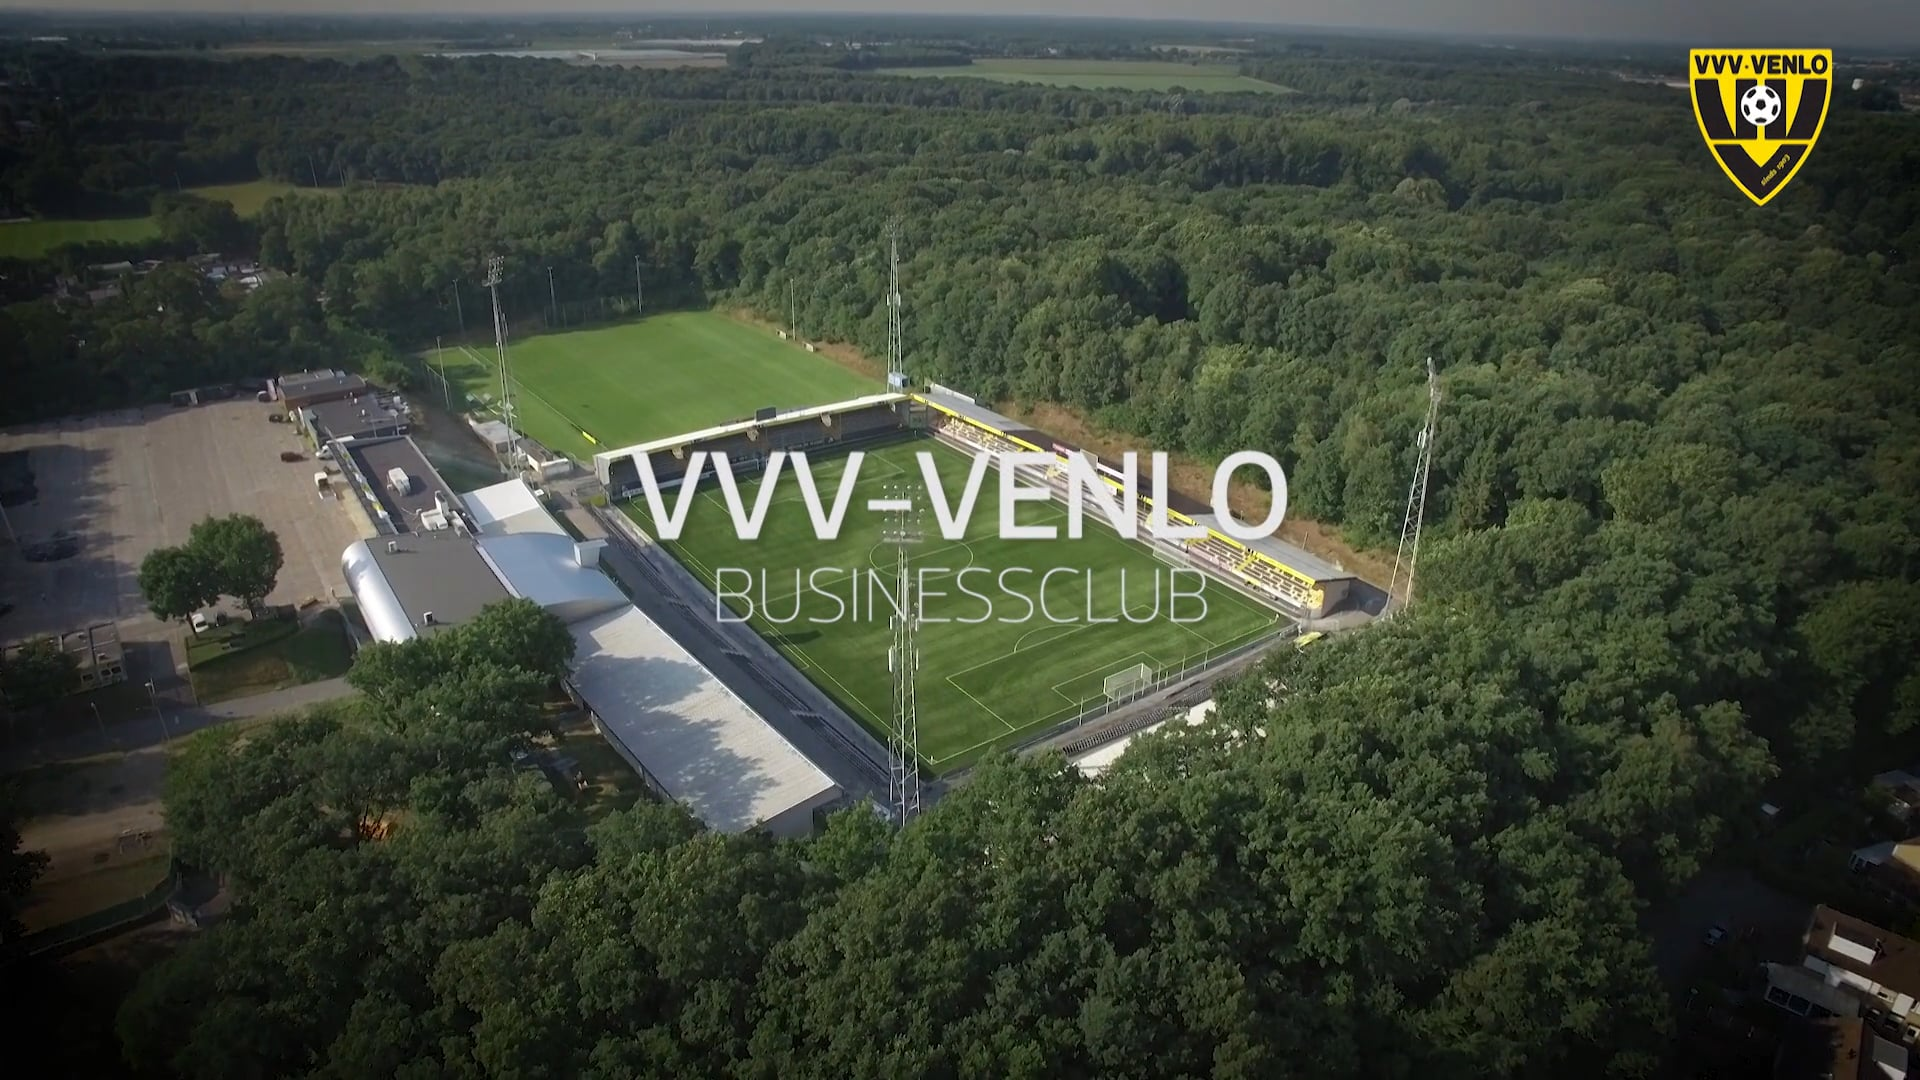 VVV-VENLO BUSINESS